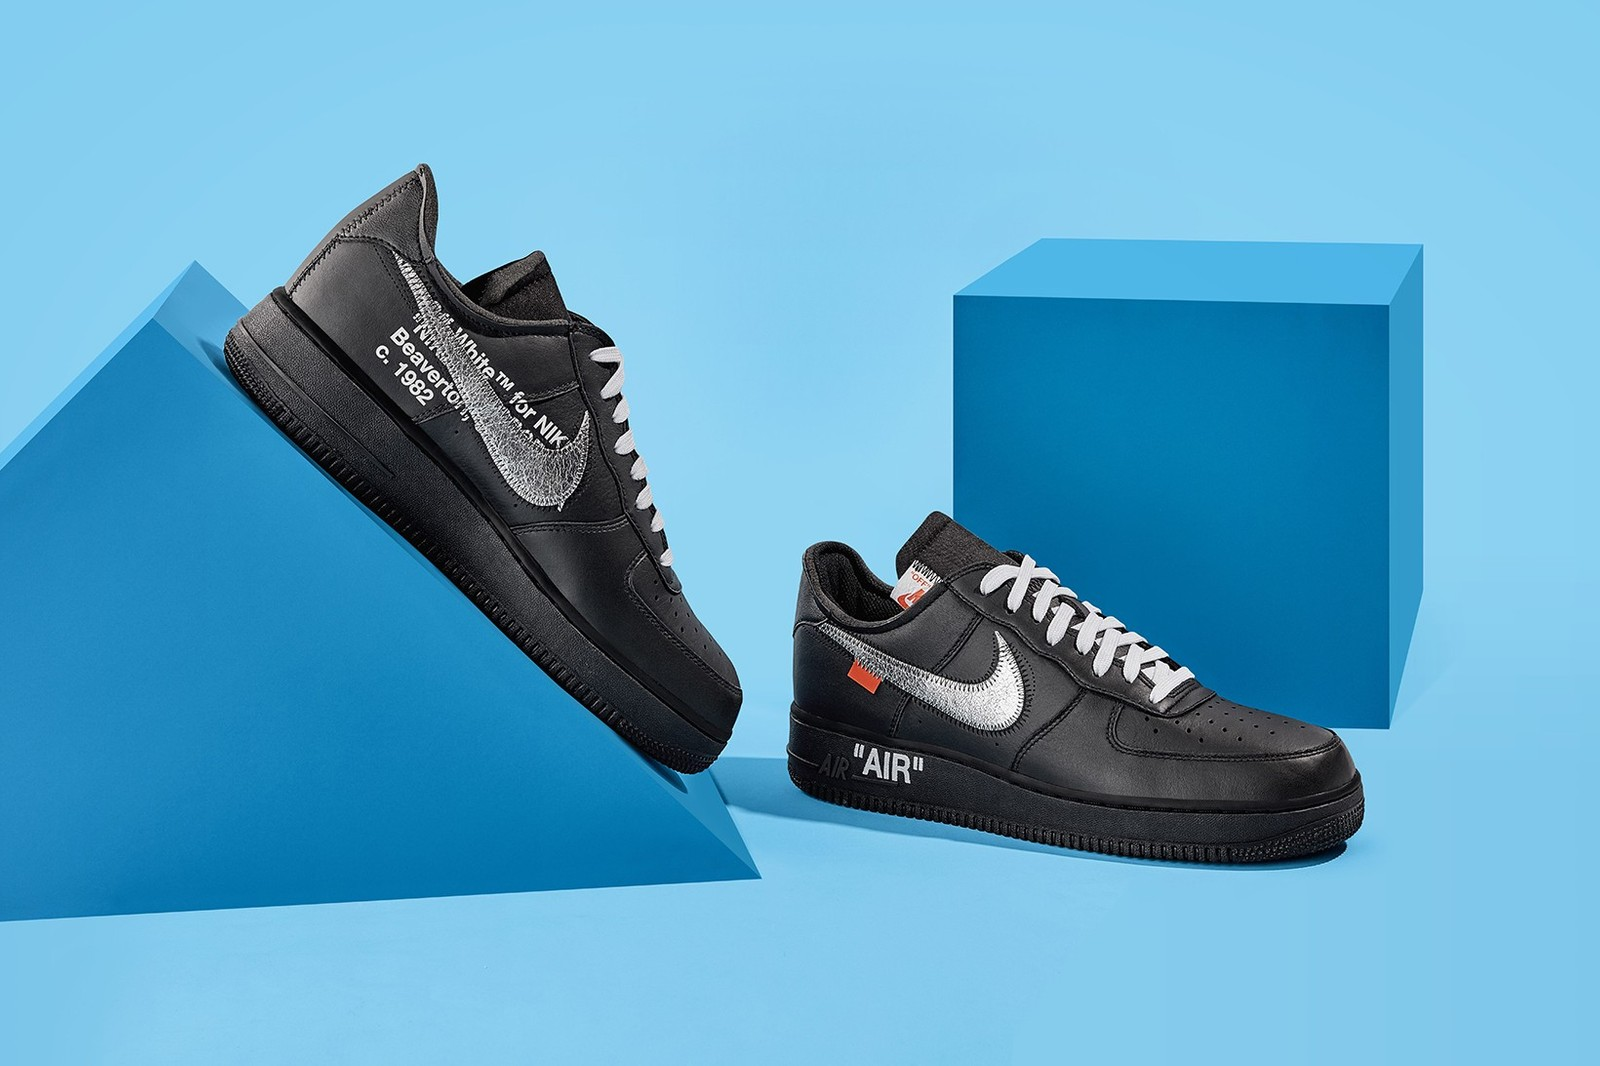 Off White x Nike Air Force 1 MoMA Low